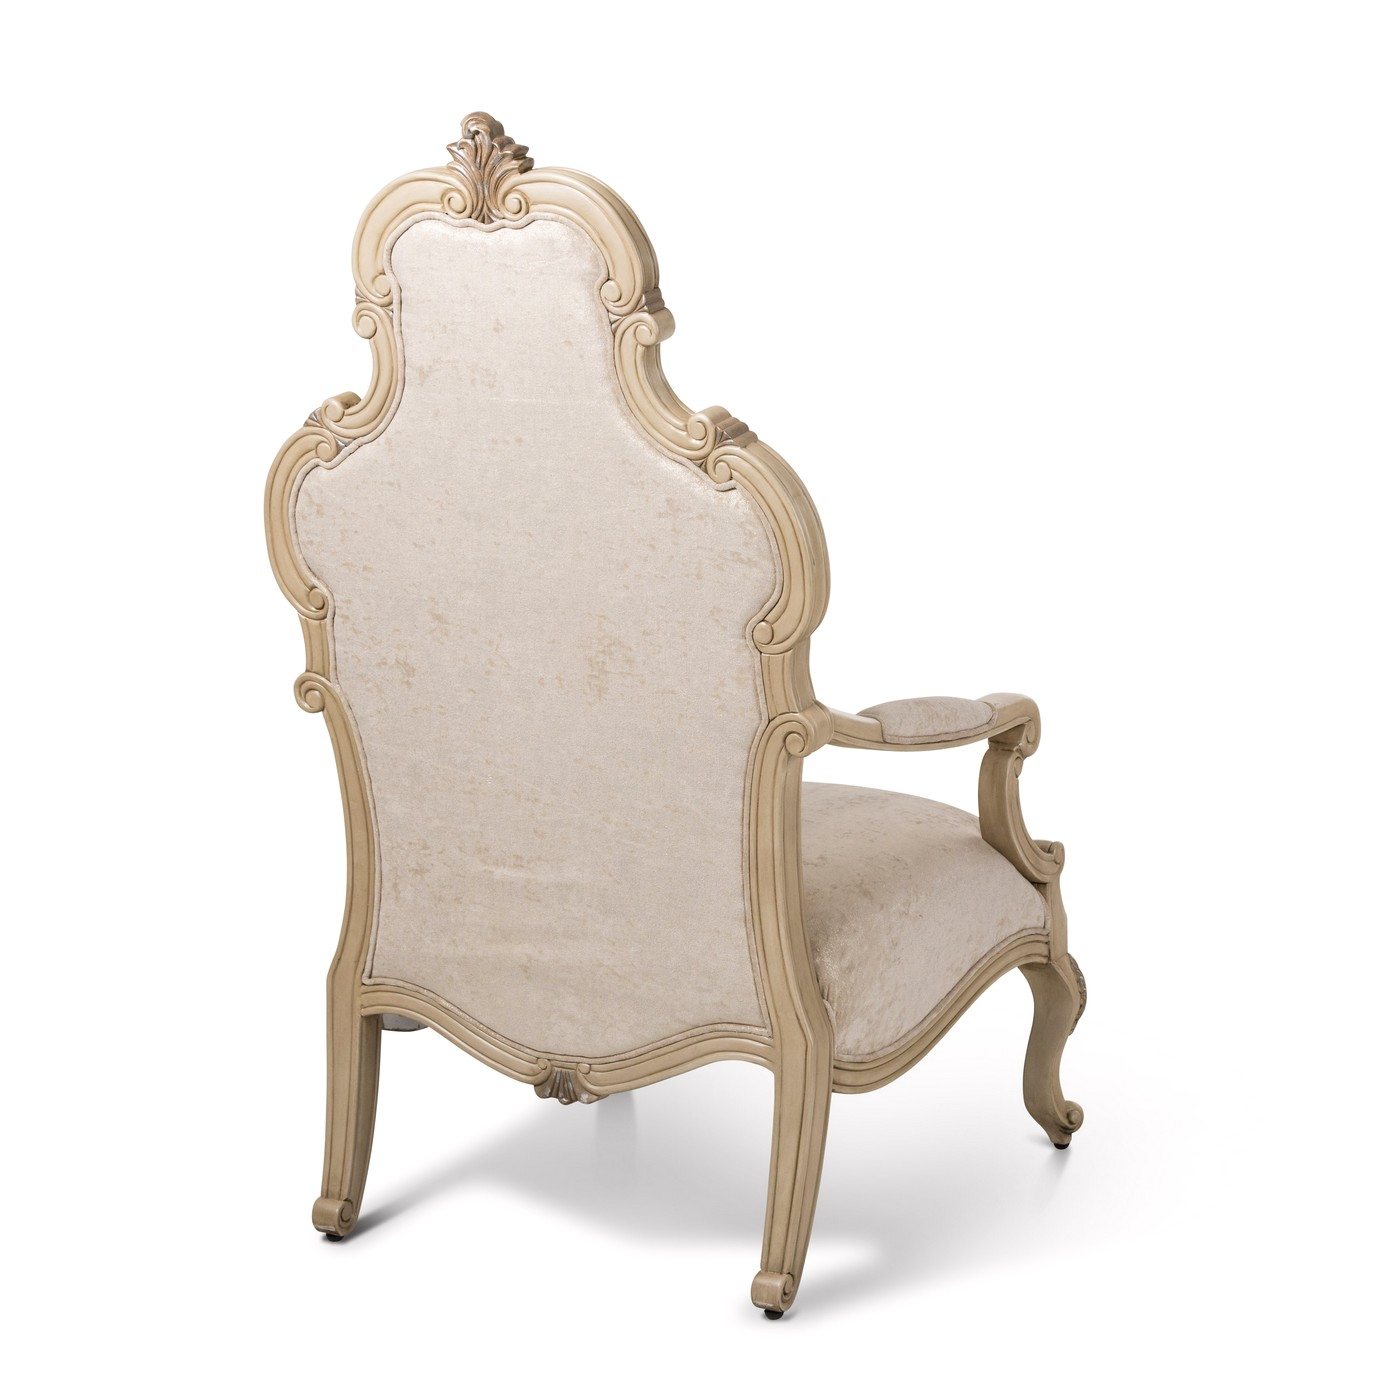 Platine De Royale French Provincial Accent Chair In